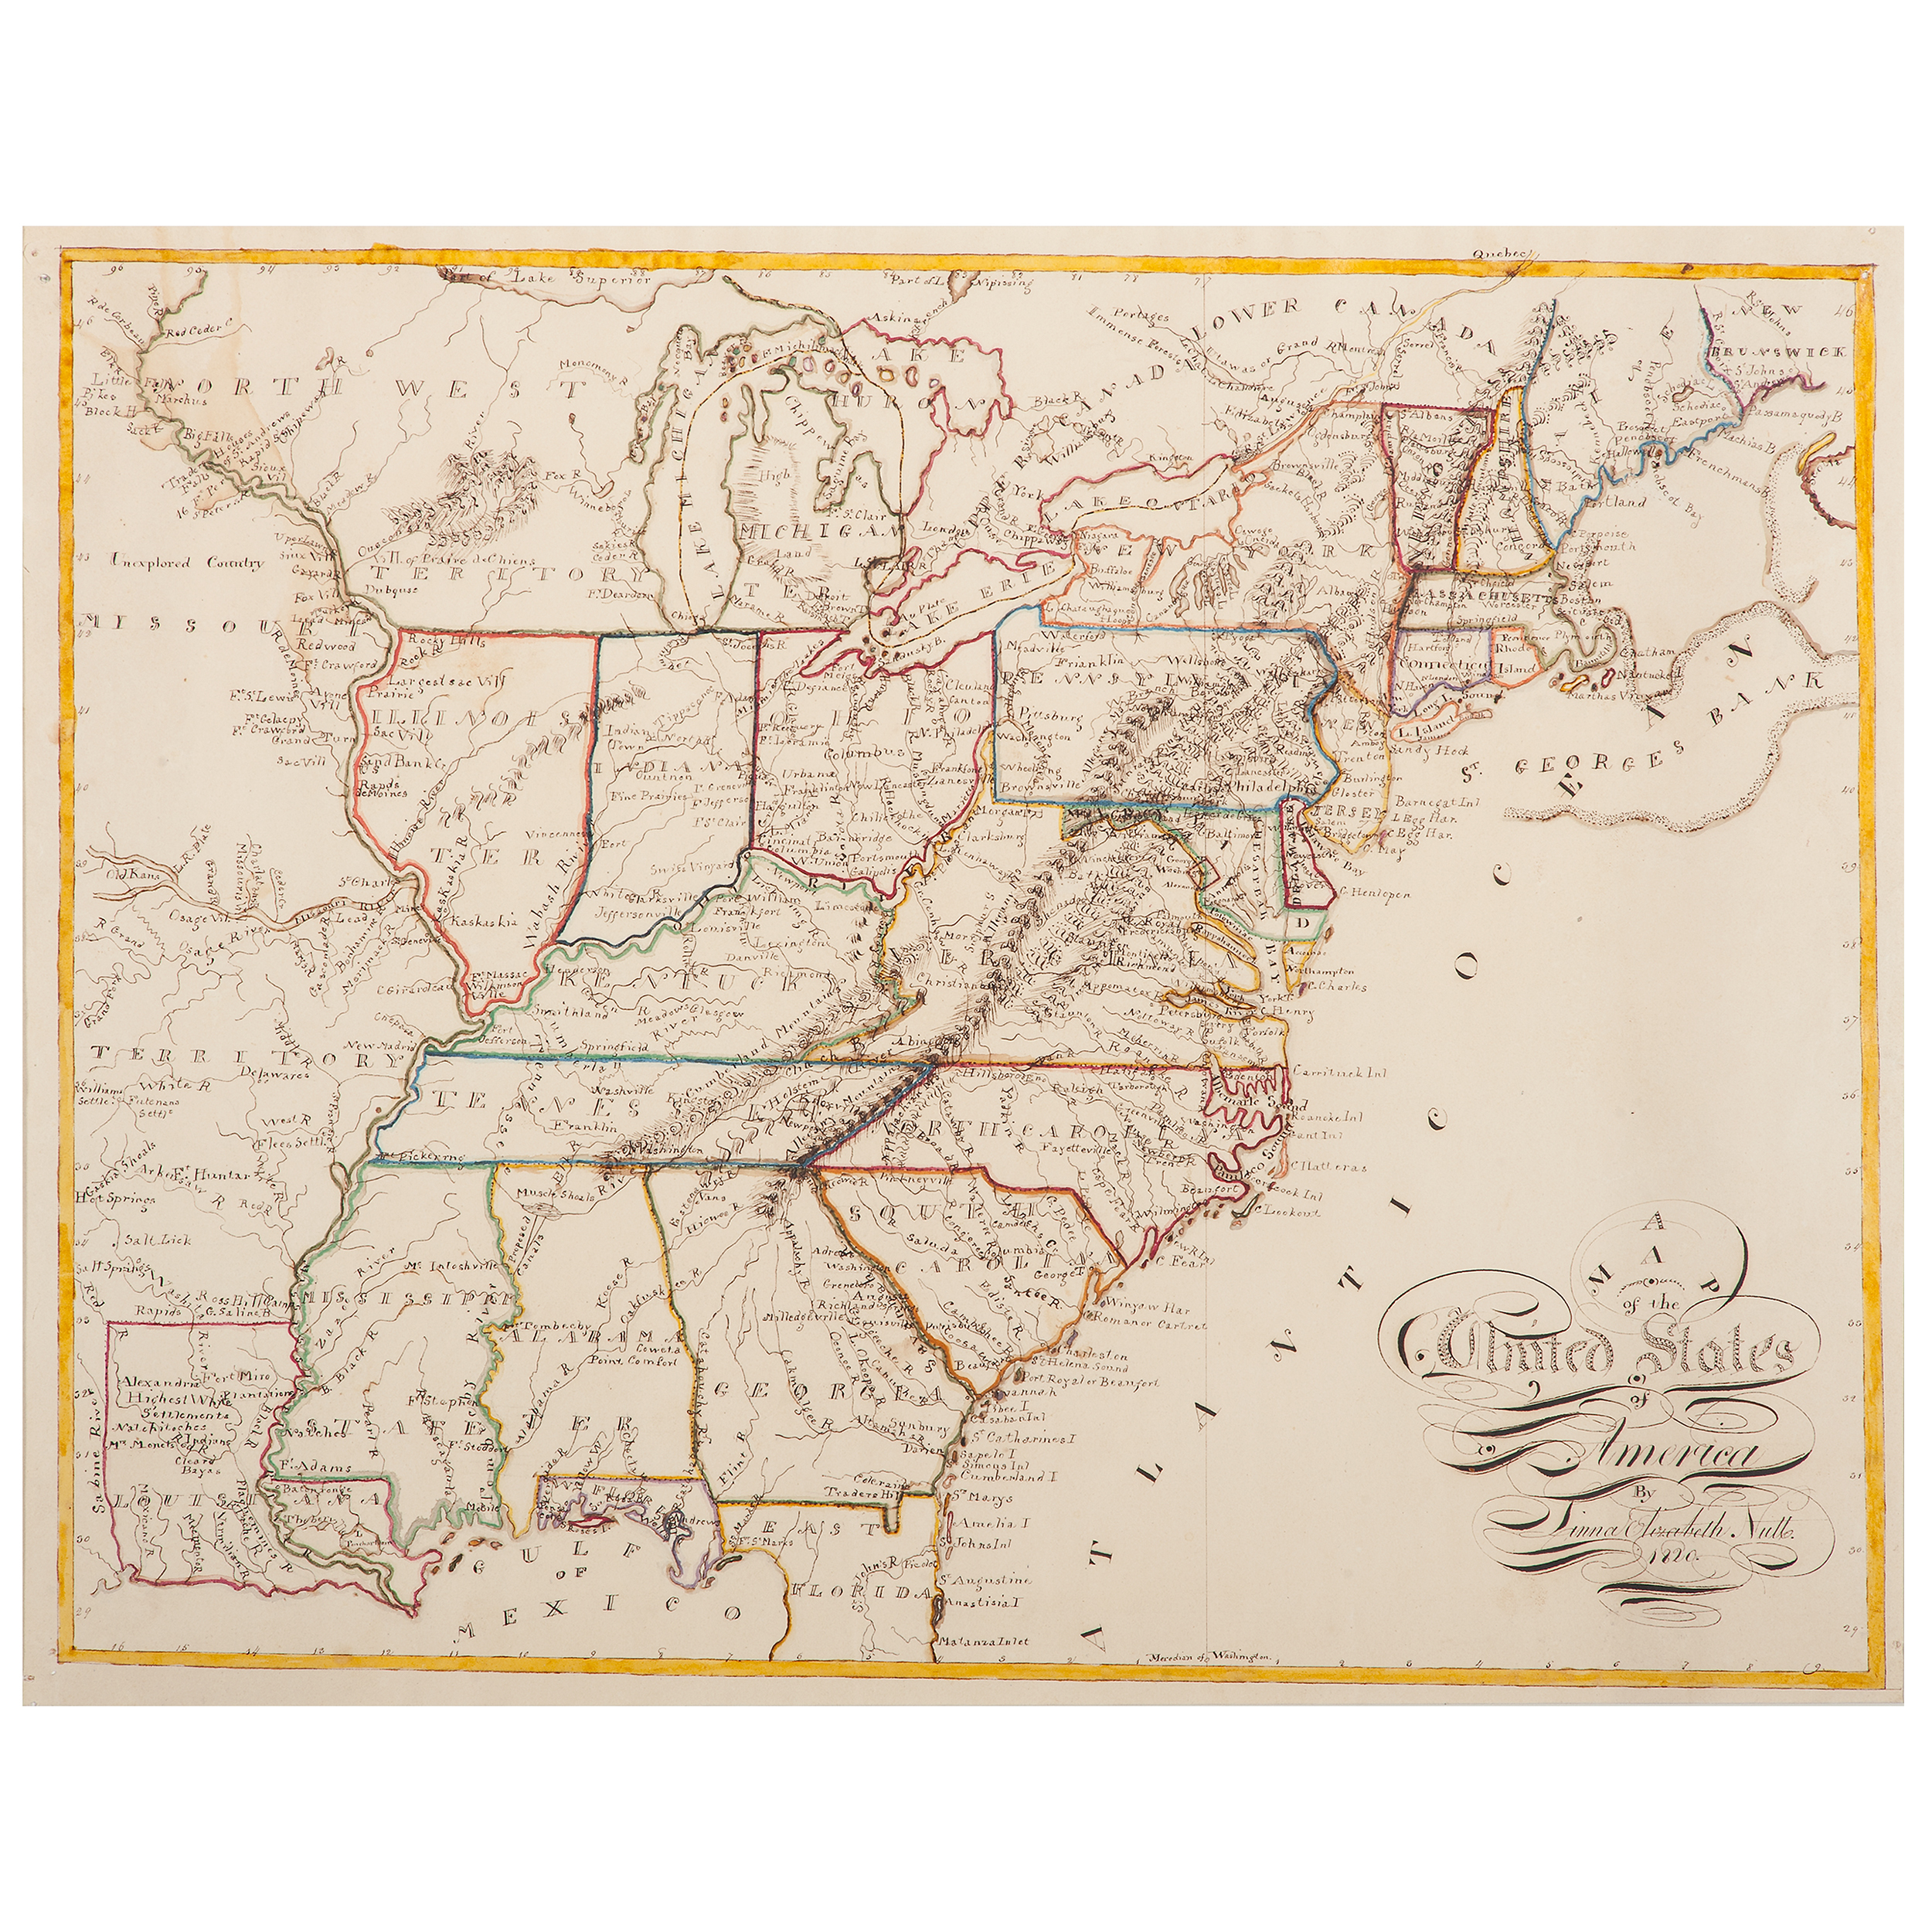 Folk Art United States Map by Linna Elizabeth Nutt, 1820 ... United States Map on united states land acquisitions, united states in 1790, united states territorial acquisitions, georgia map 1820, united states democratic party, united states acquisition of texas, illinois map 1820, united states 1853, europe map 1820, united states state abbreviations, united states maps usa, united states in order of statehood, united states expansionism, mexico map 1820, africa map 1820, united states in 1860, united states imperialism political cartoon, united states in 1880, united states territories and commonwealths, tennessee map 1820,